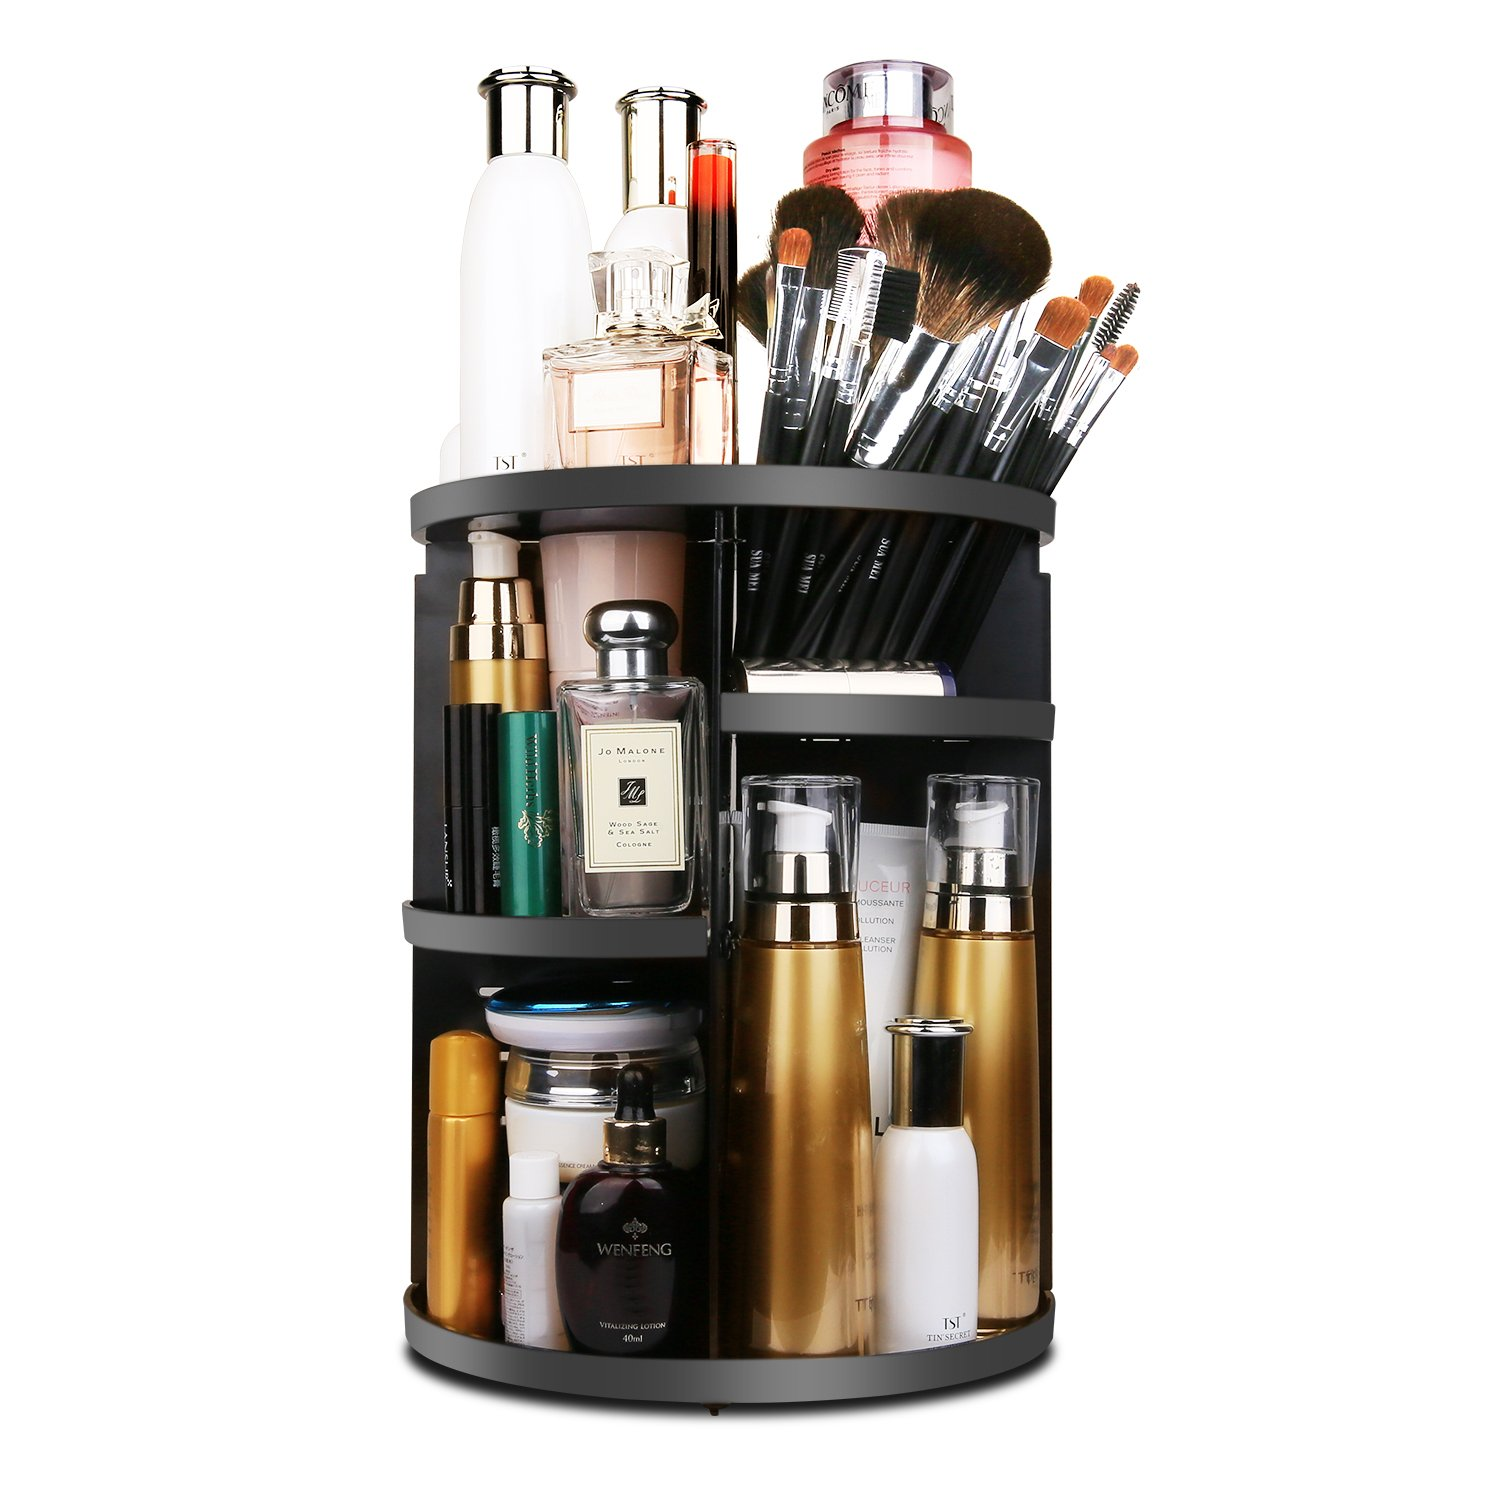 MOFIR Makeup Organizer 360 Degree Rotating, Adjustable Multi-Function Cosmetics Storage Box, Small Size Extra Large Capacity, Fits Different Sizes of Cosmetics … (Circle, White)